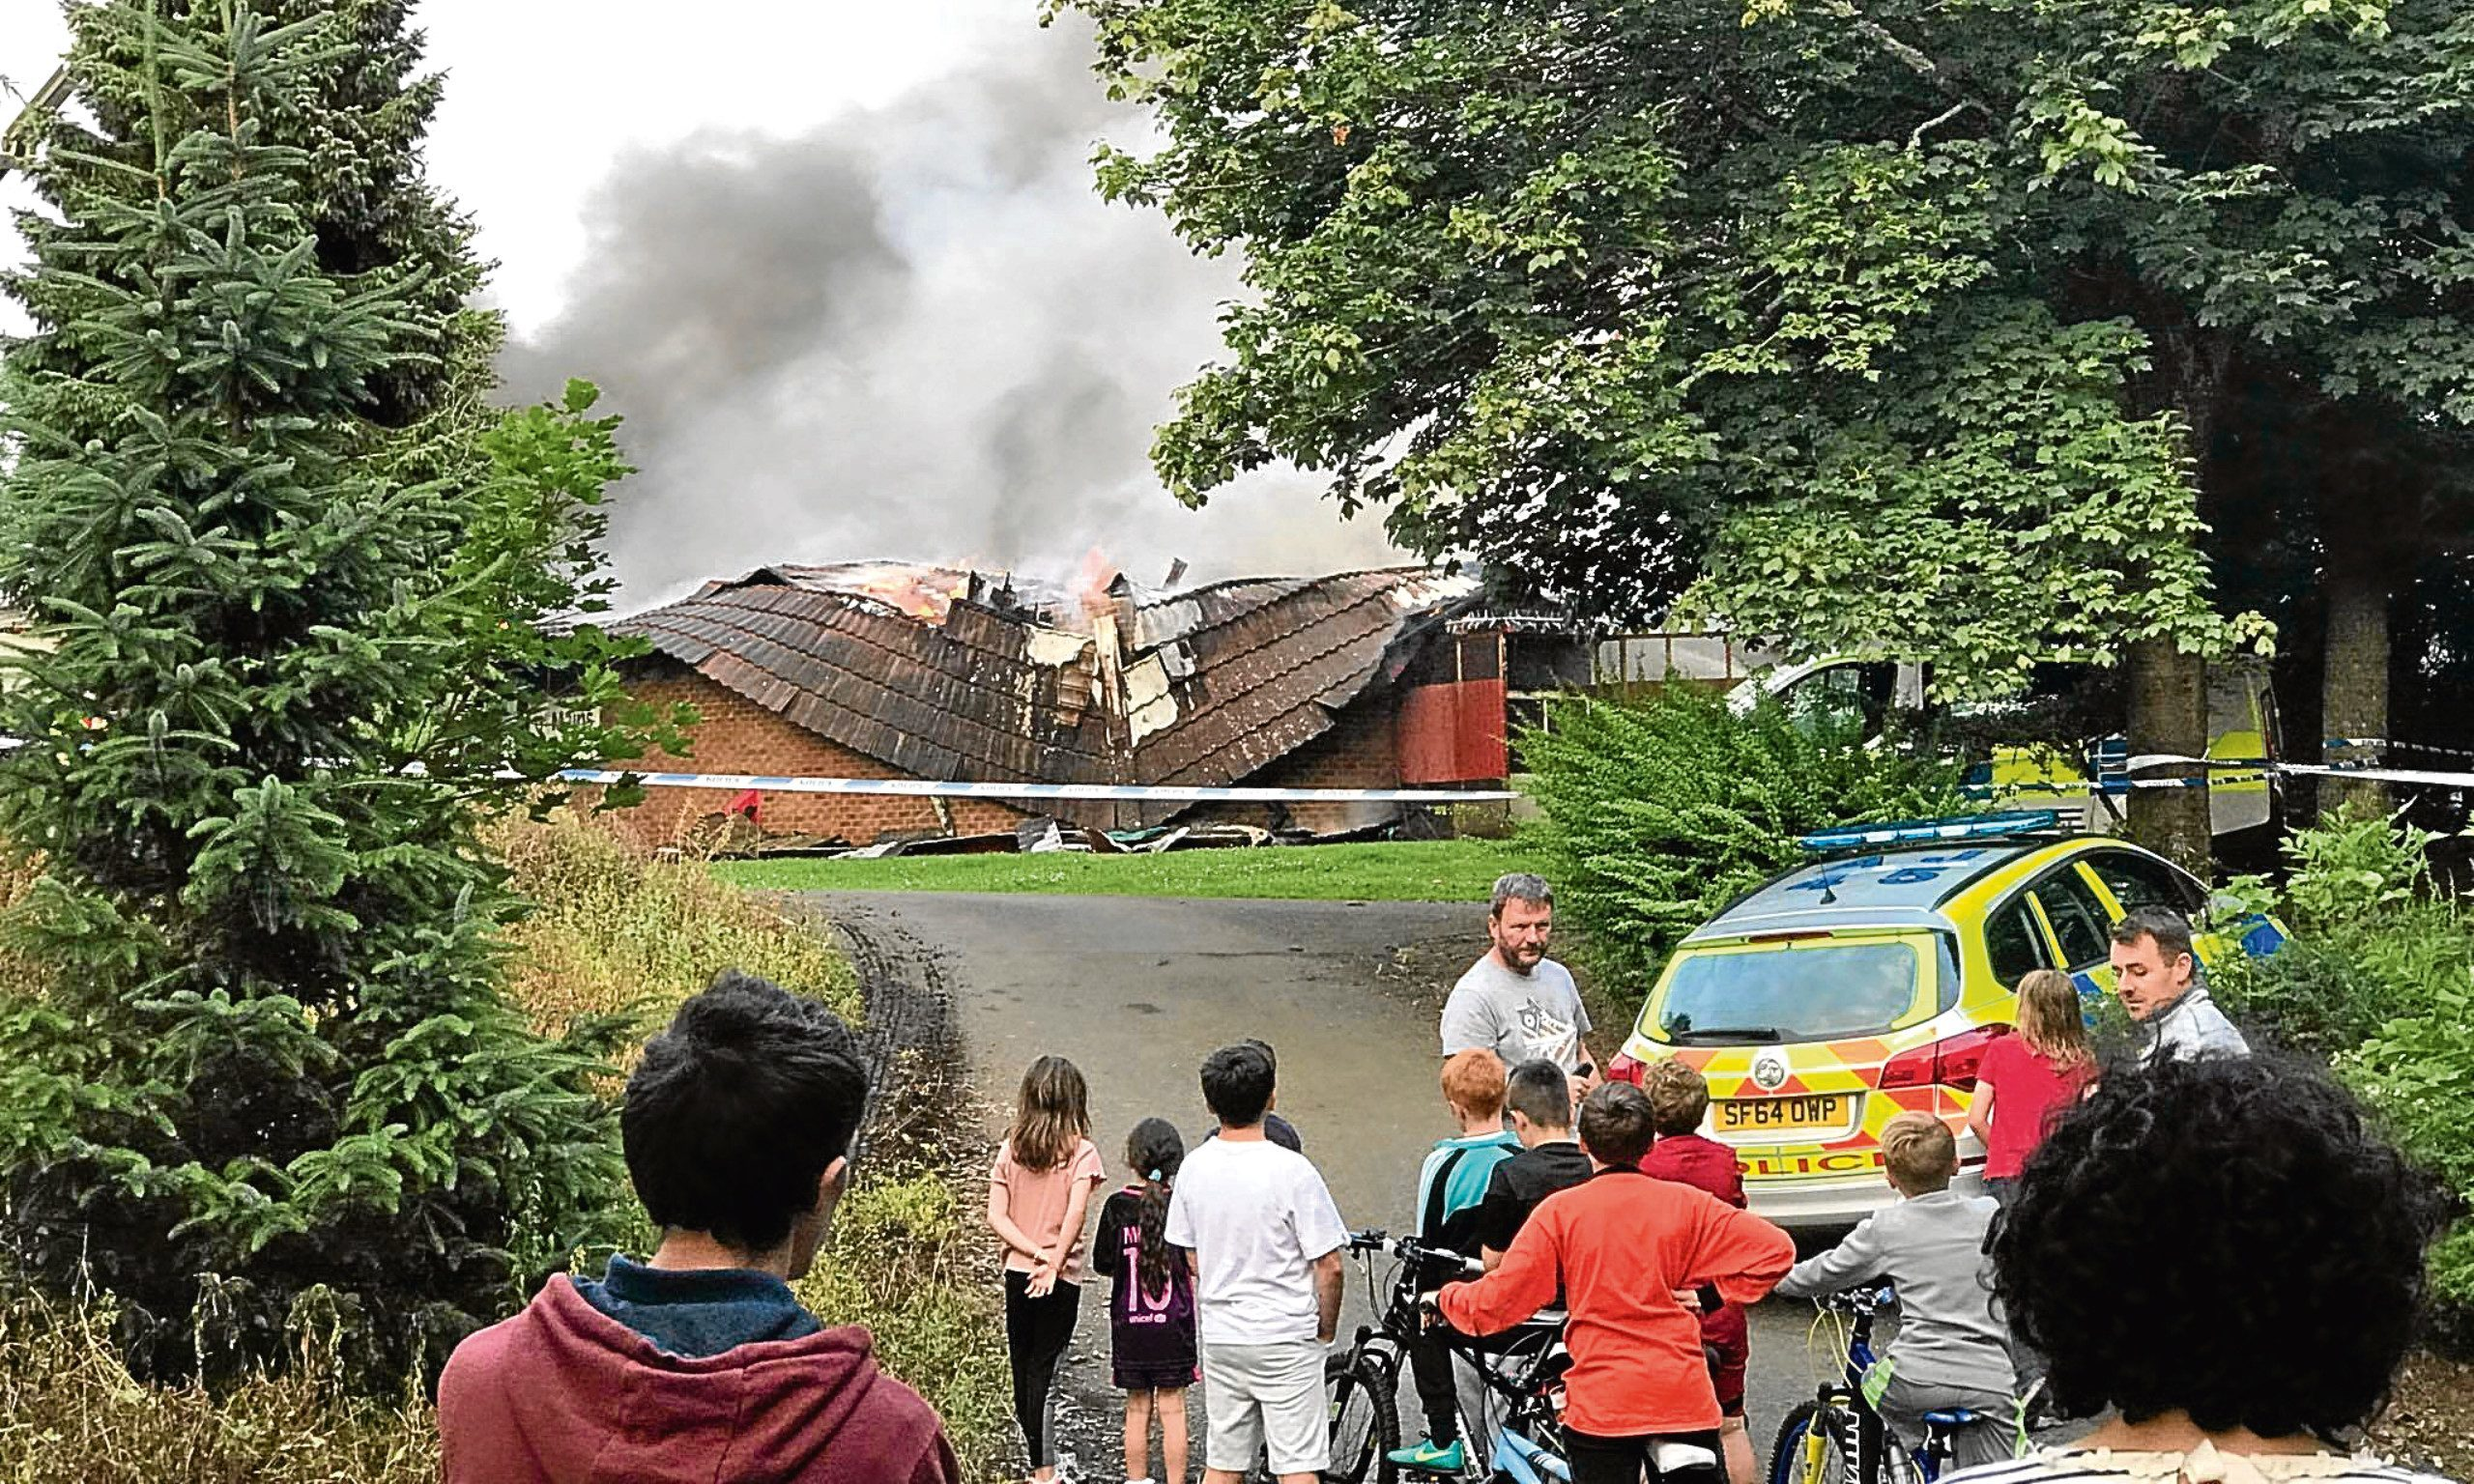 Shocked onlookers when the community pavilion went on fire in 2013.